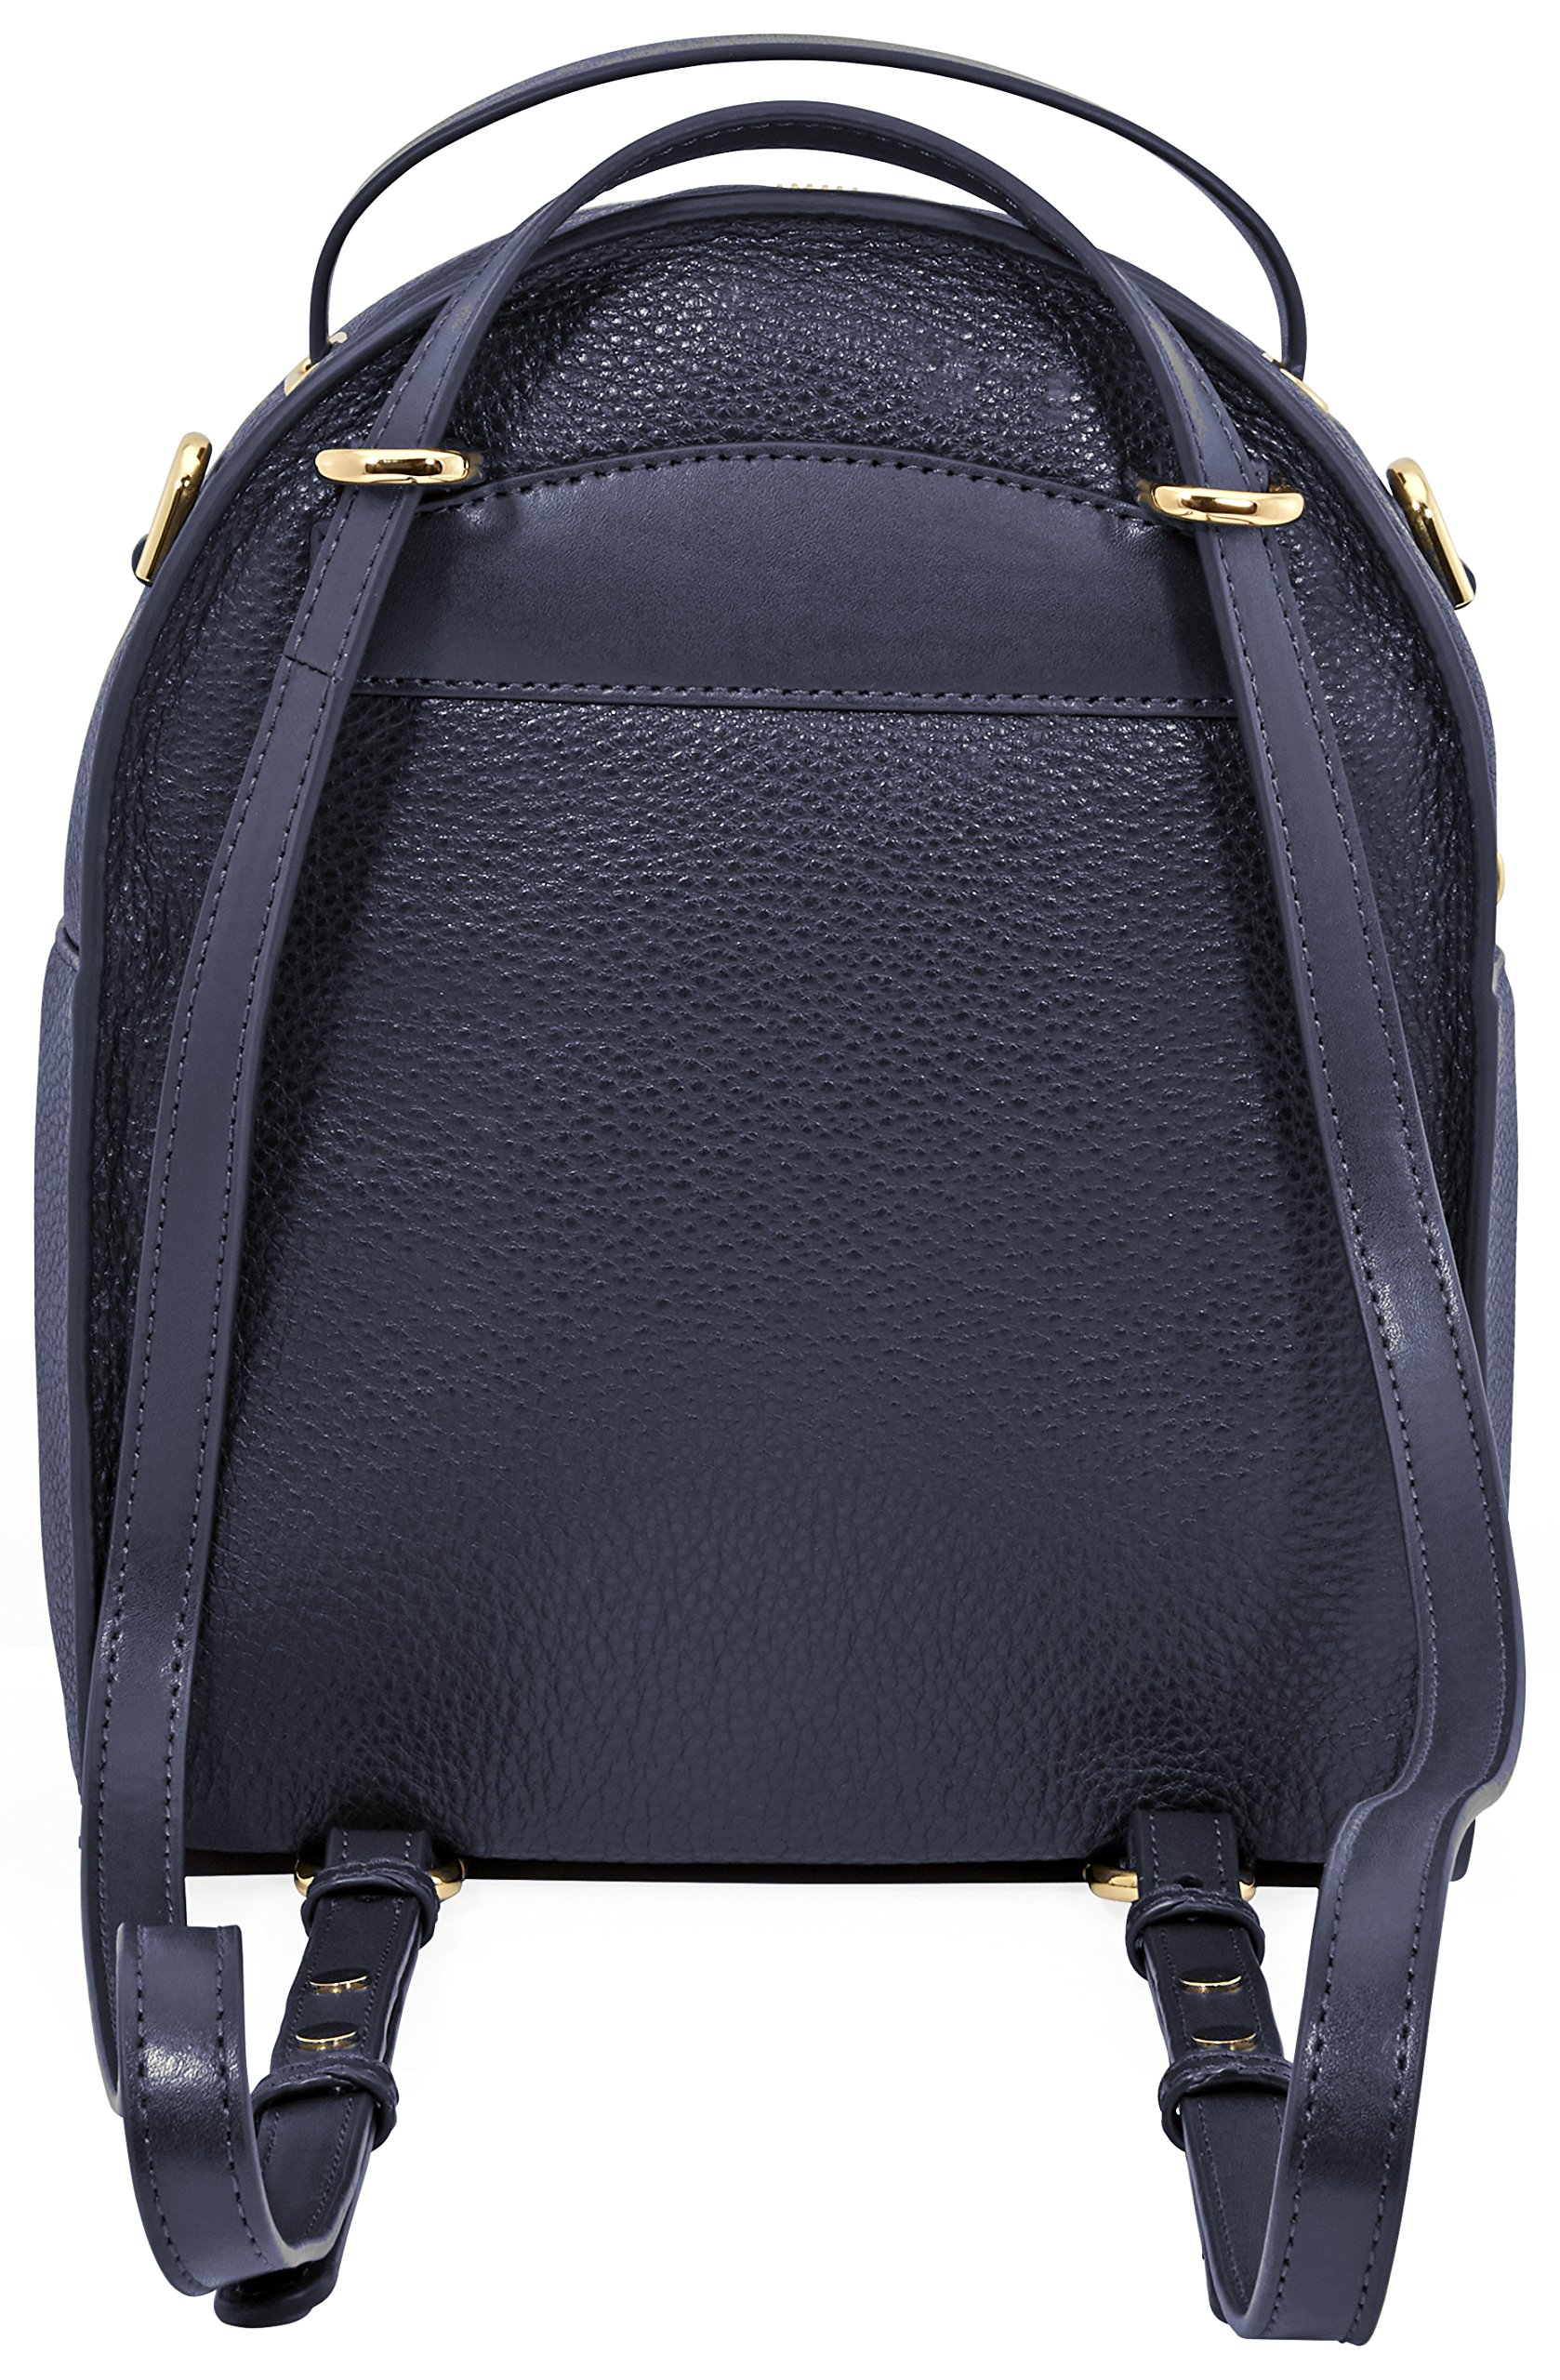 edb52cddb7e1 Michael Kors Jessa Small Pebbled Leather Convertible Backpack- Admiral  30T8GEVB5L-414 - Walmart.com